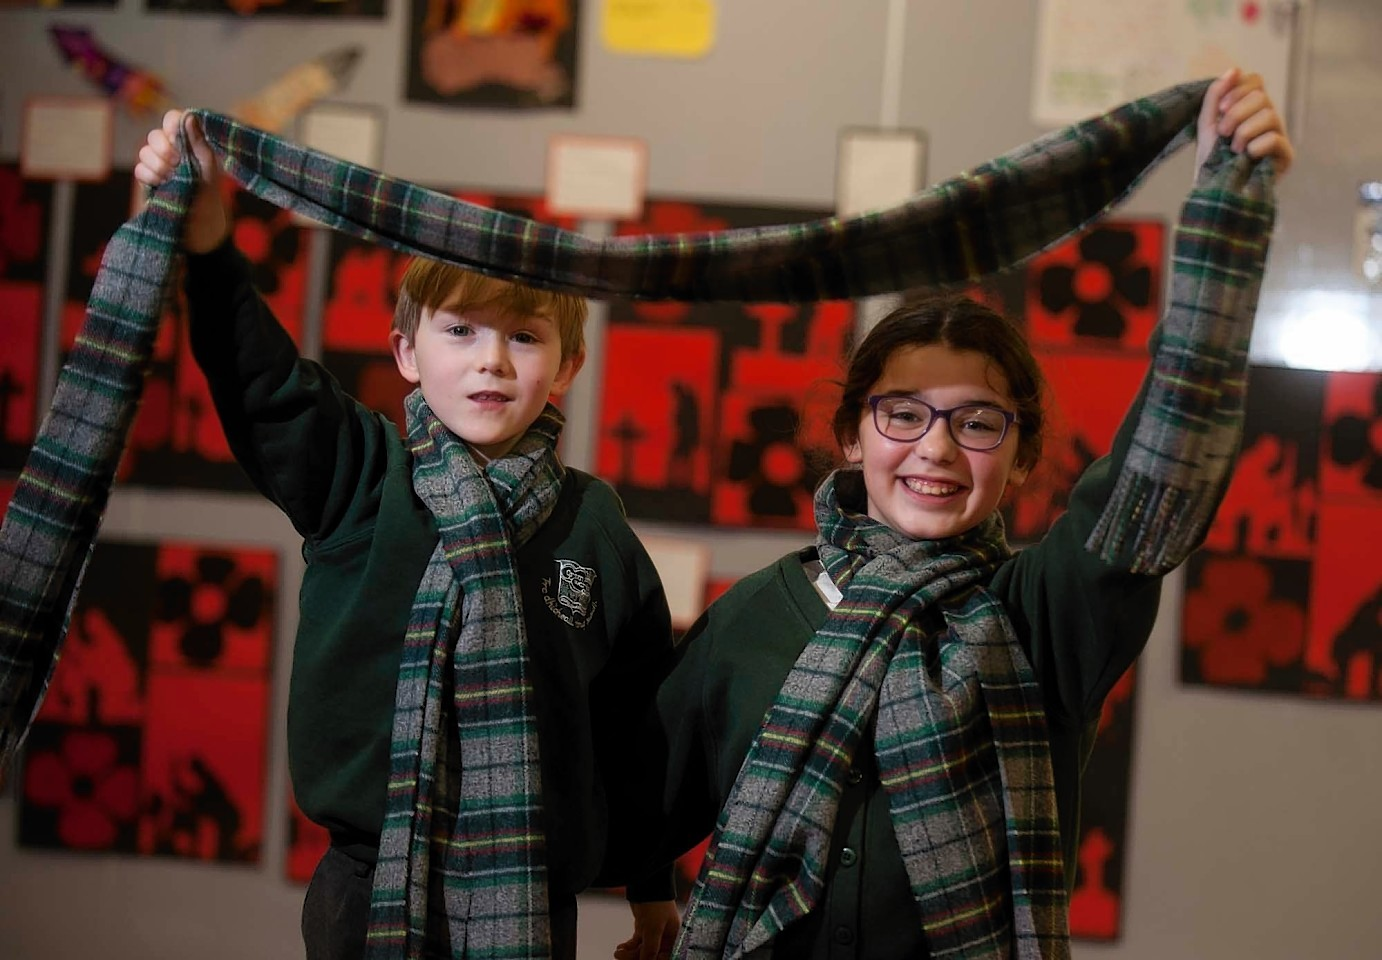 Archie Coull  and Aliyah Wilson with their tartan